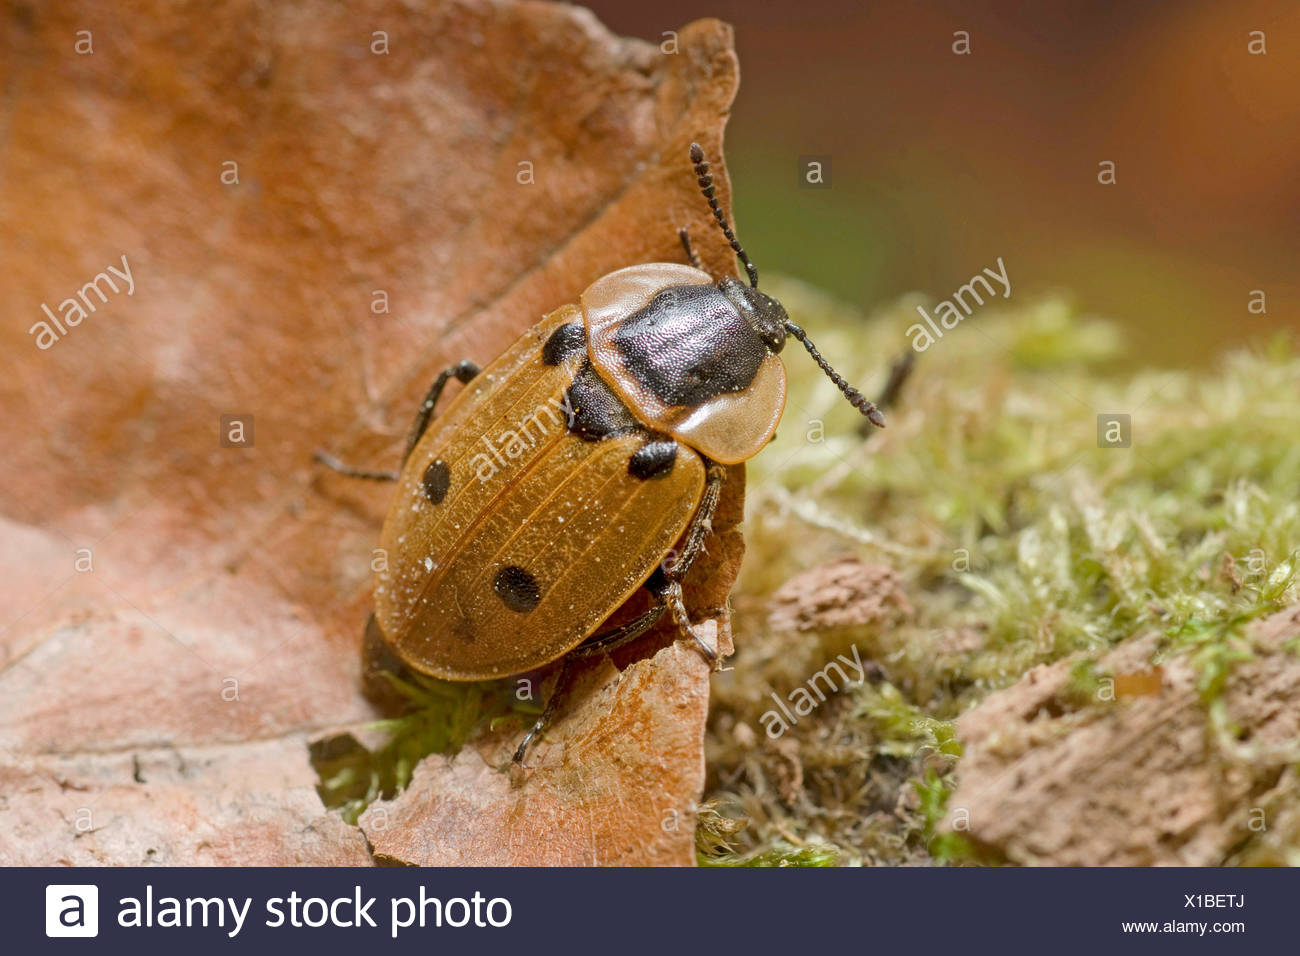 four-spotted burying beetle (Xylodrepa quadrimaculata, Dendroxena quadrimaculata), sitting on a dry leaf lying in moss, Germany - Stock Image